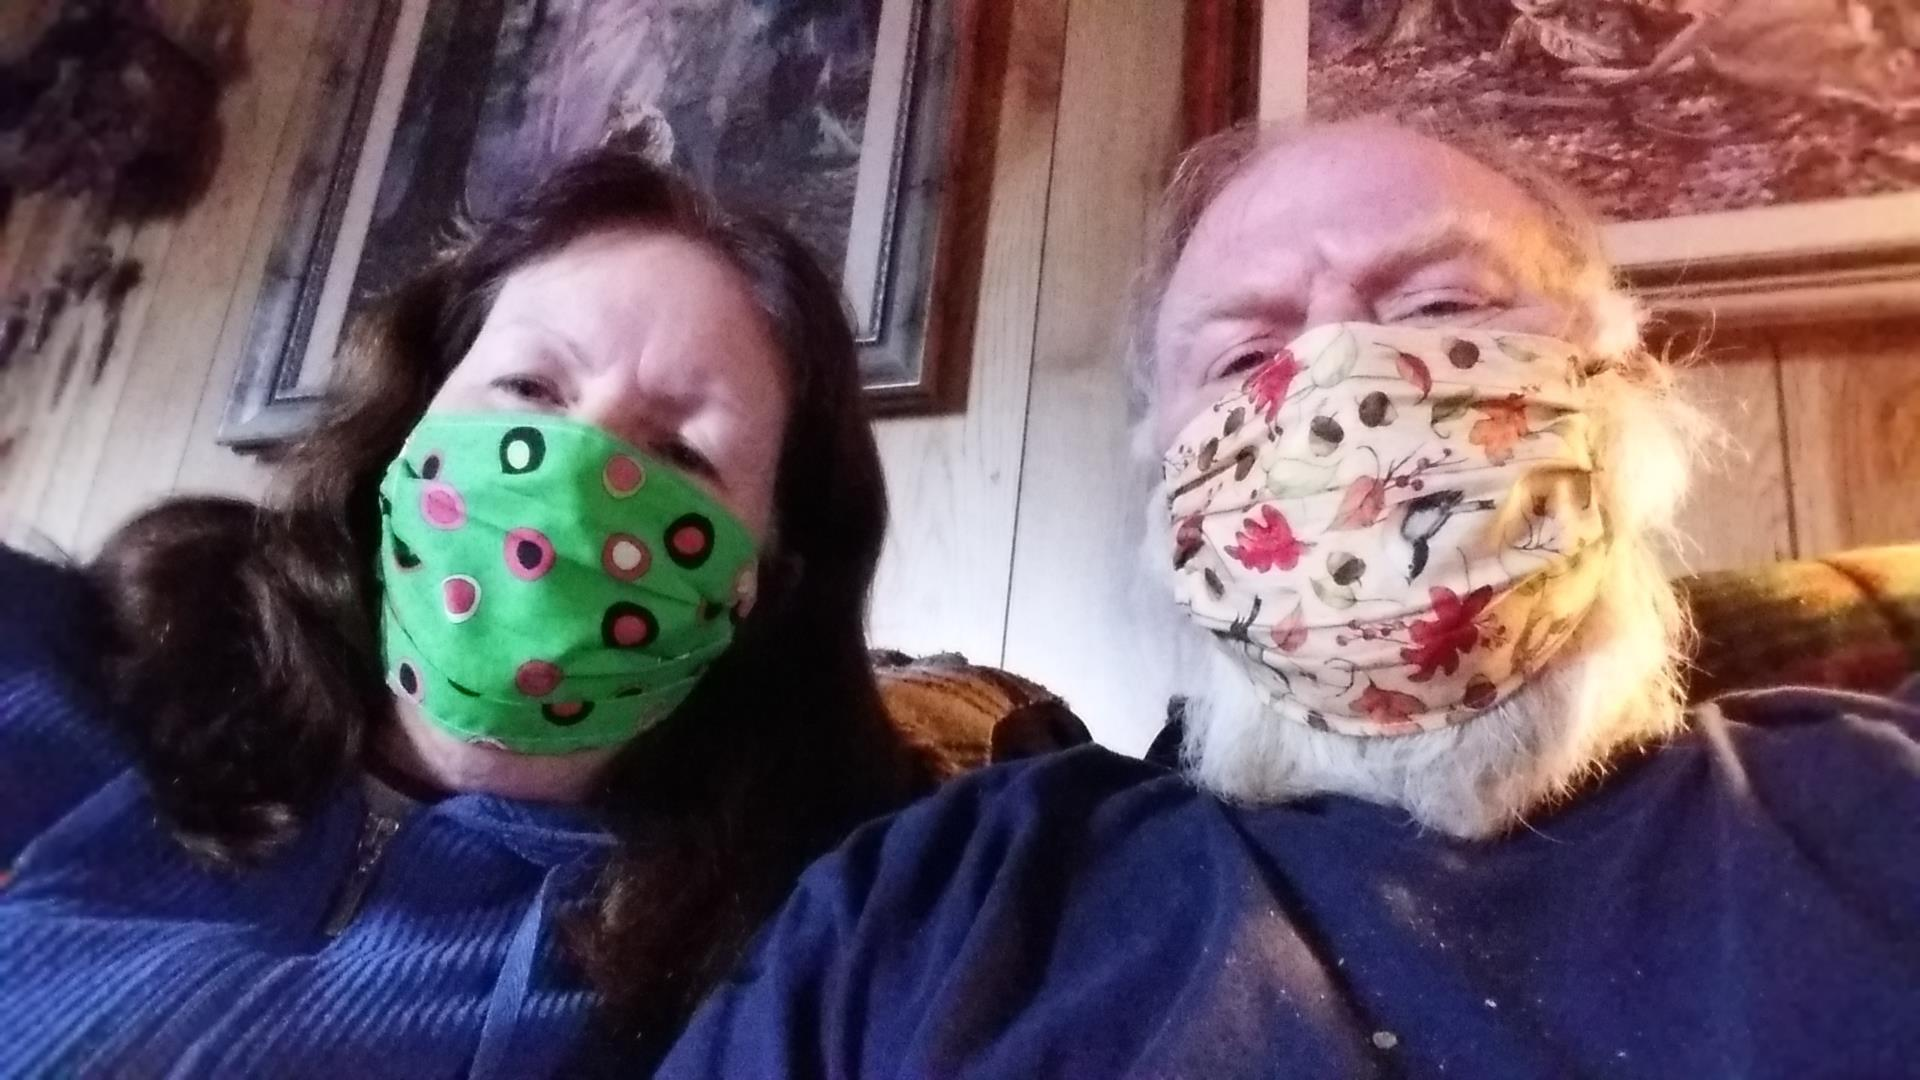 A man and woman wearing face masks